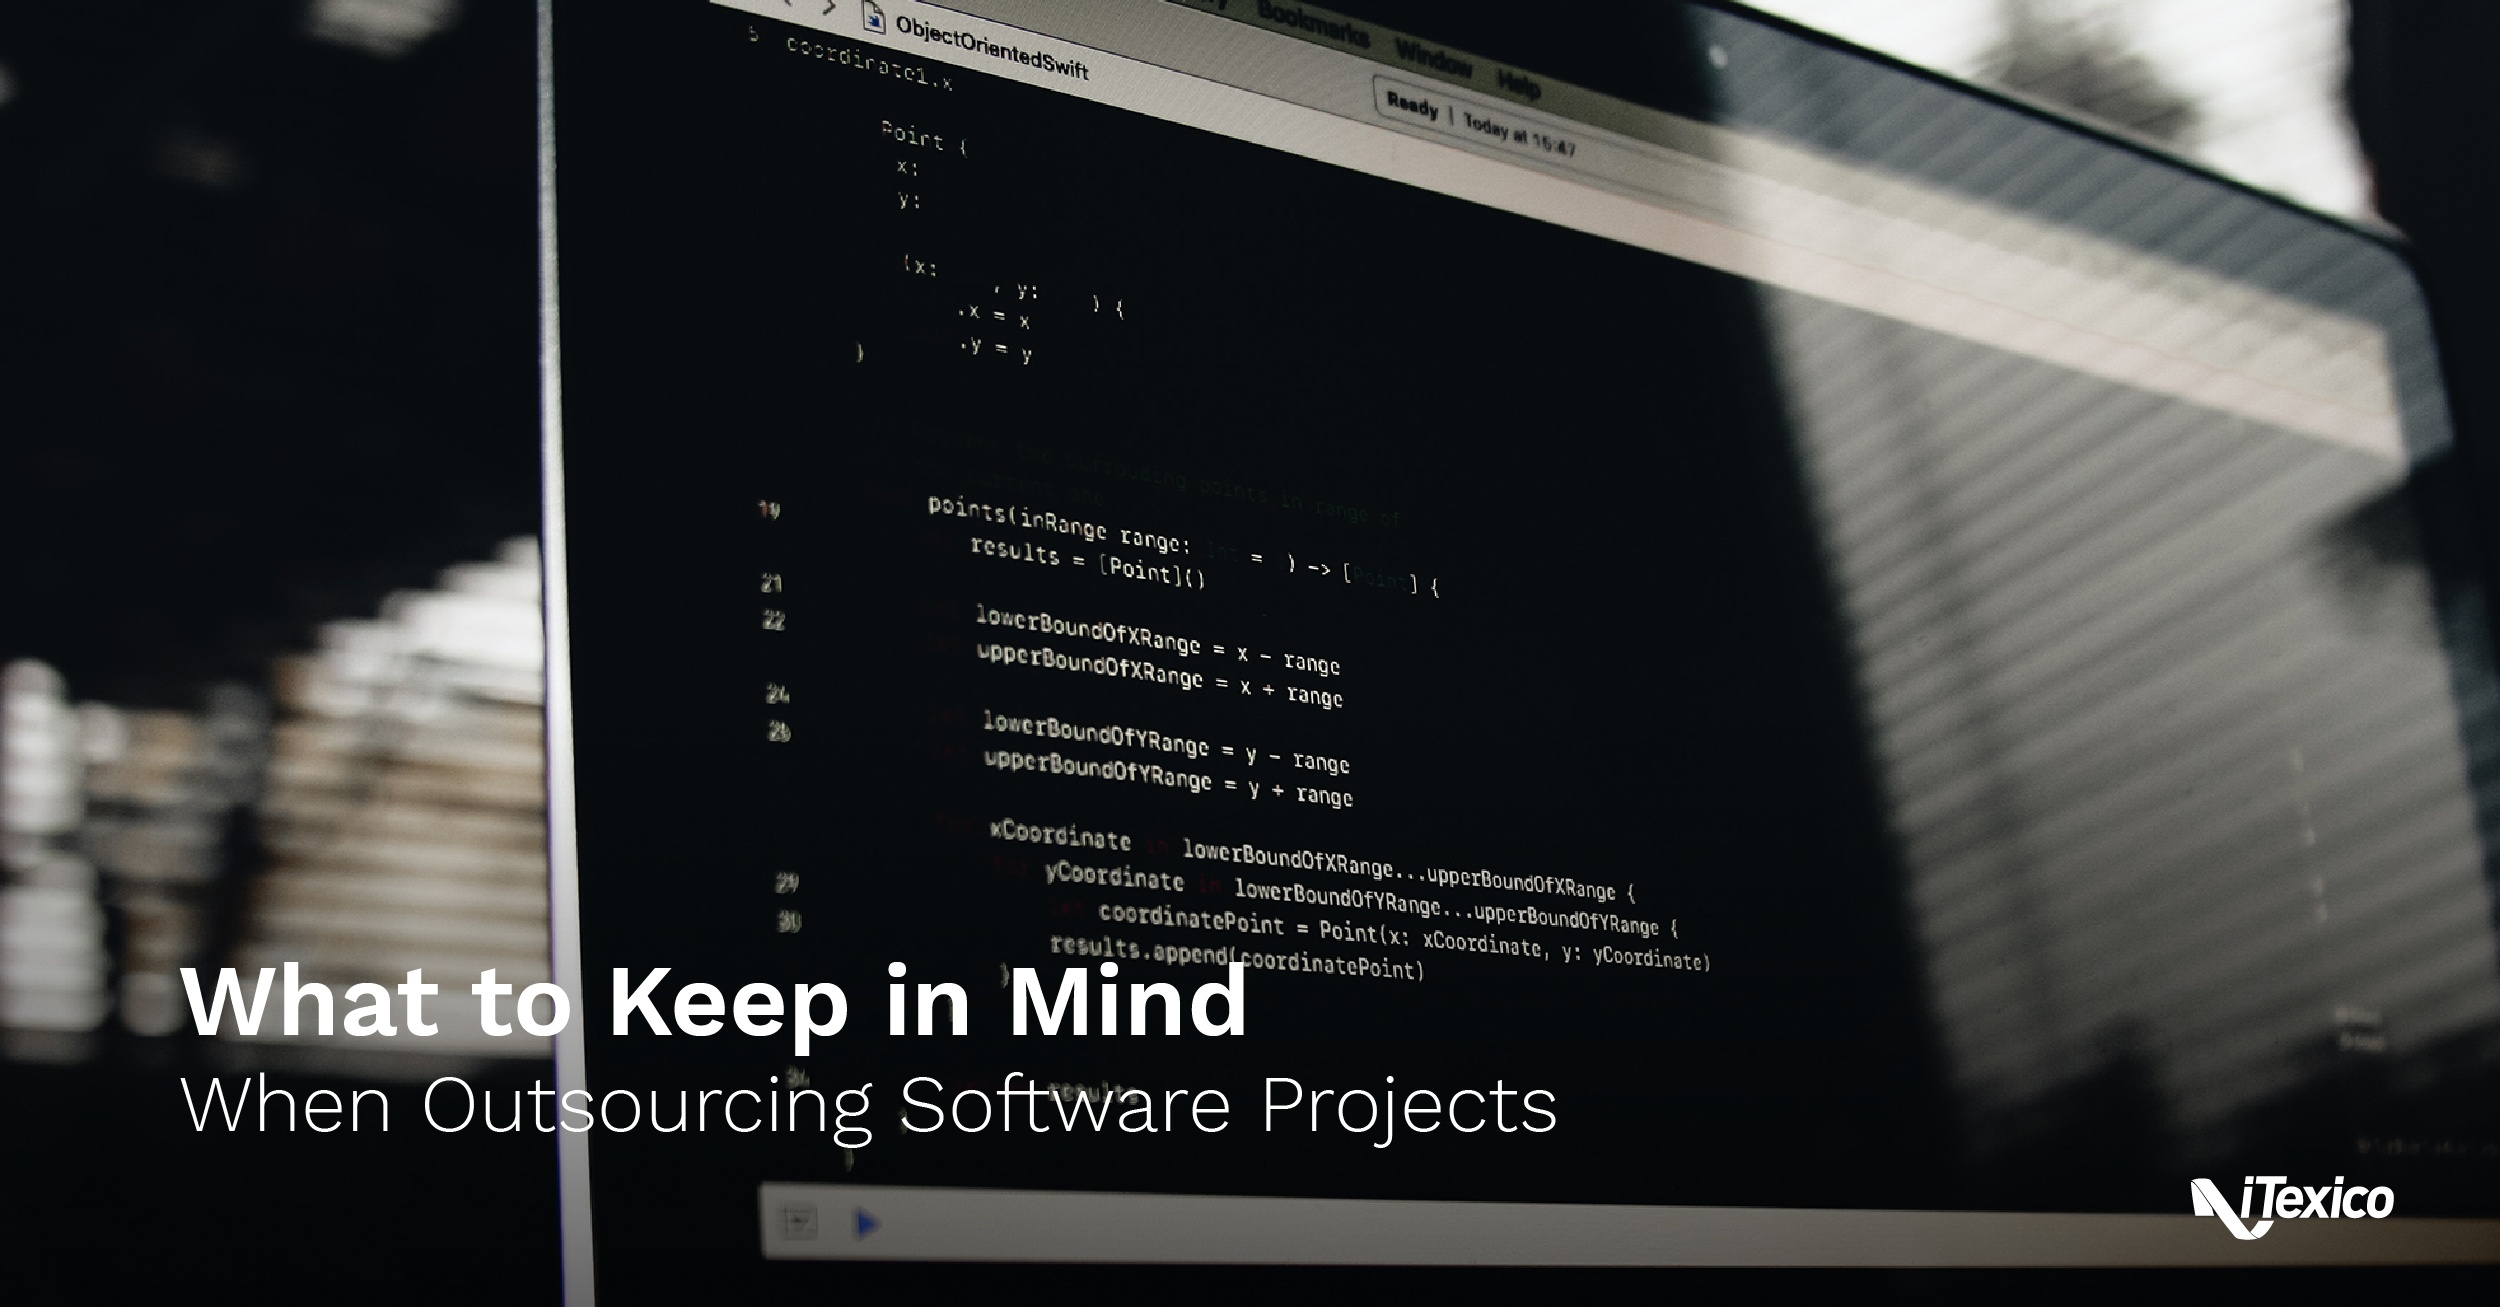 What to Keep in Mind When Outsourcing Software Projects